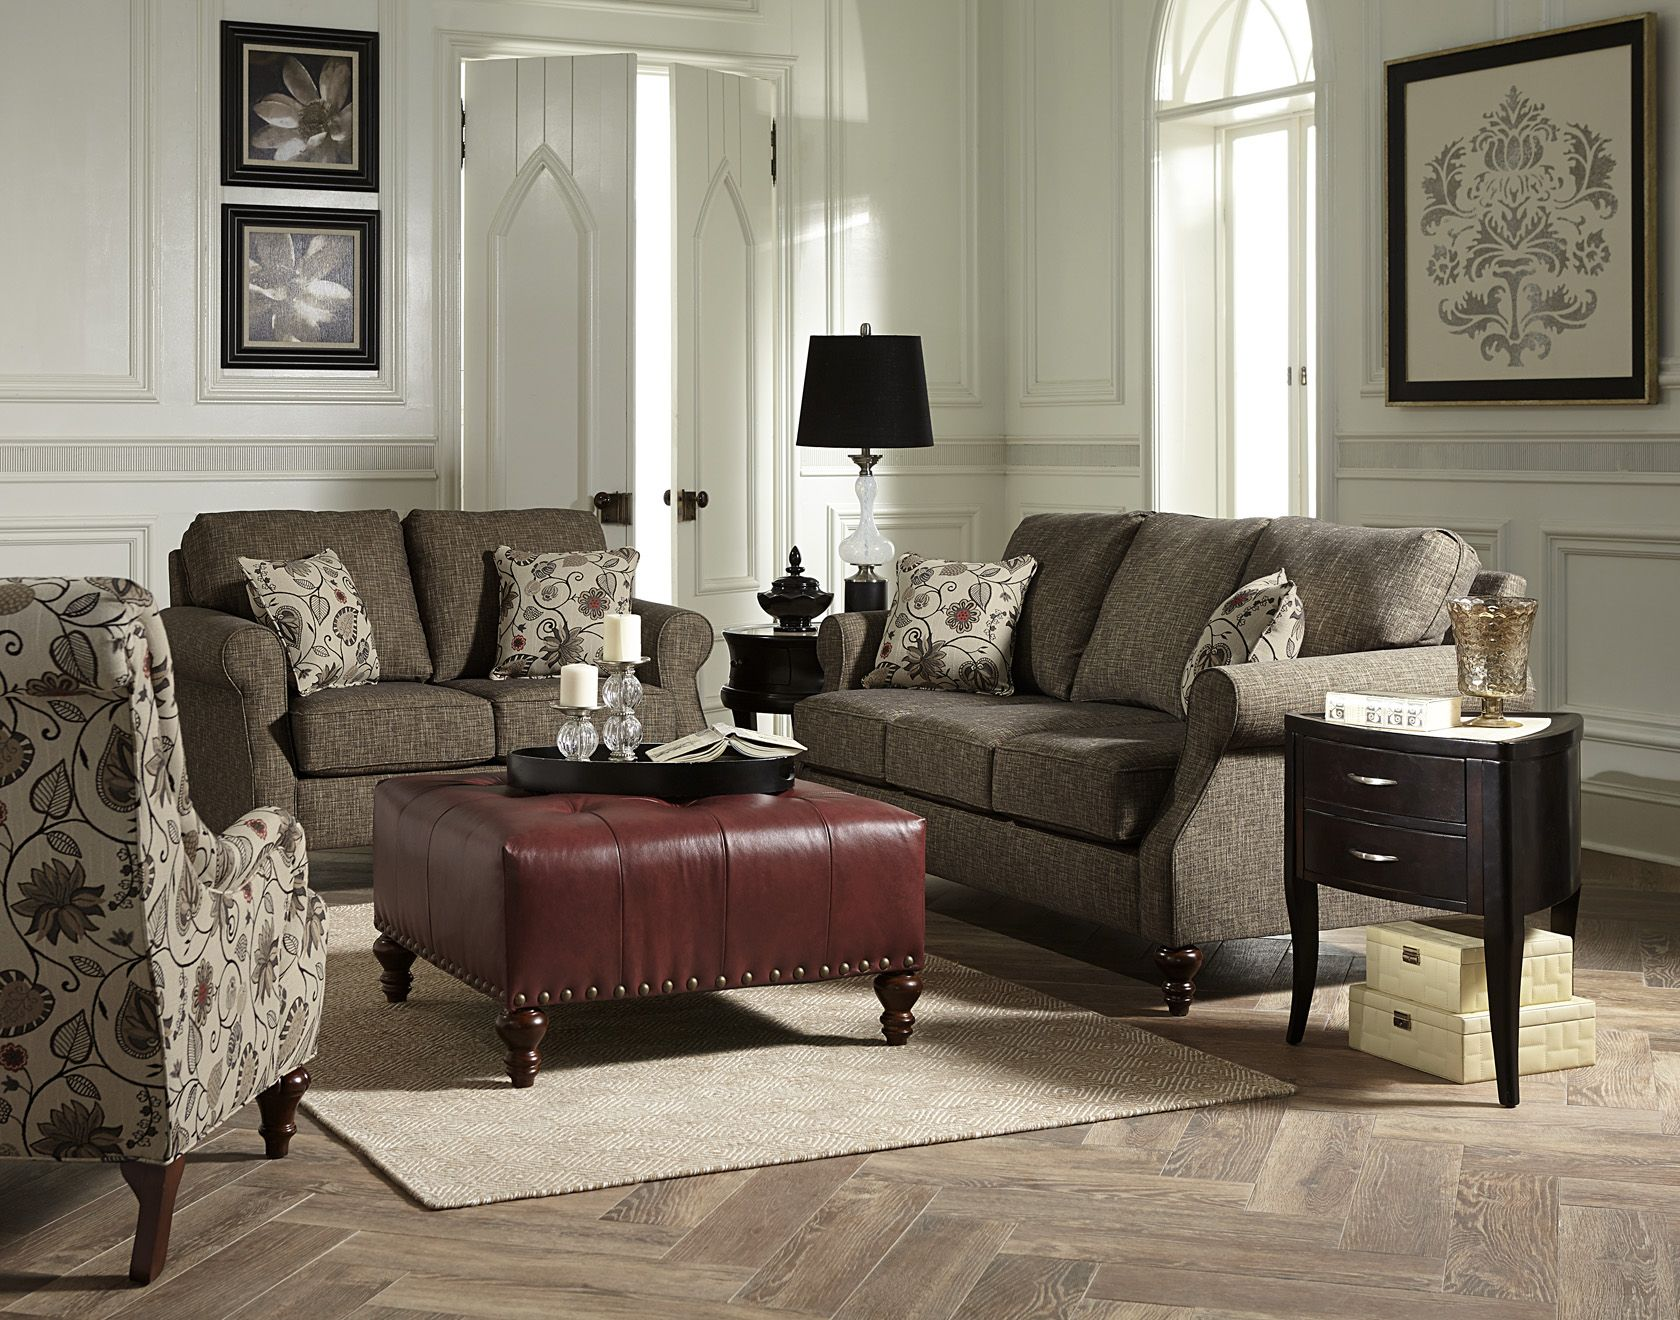 England Living Room Furniture